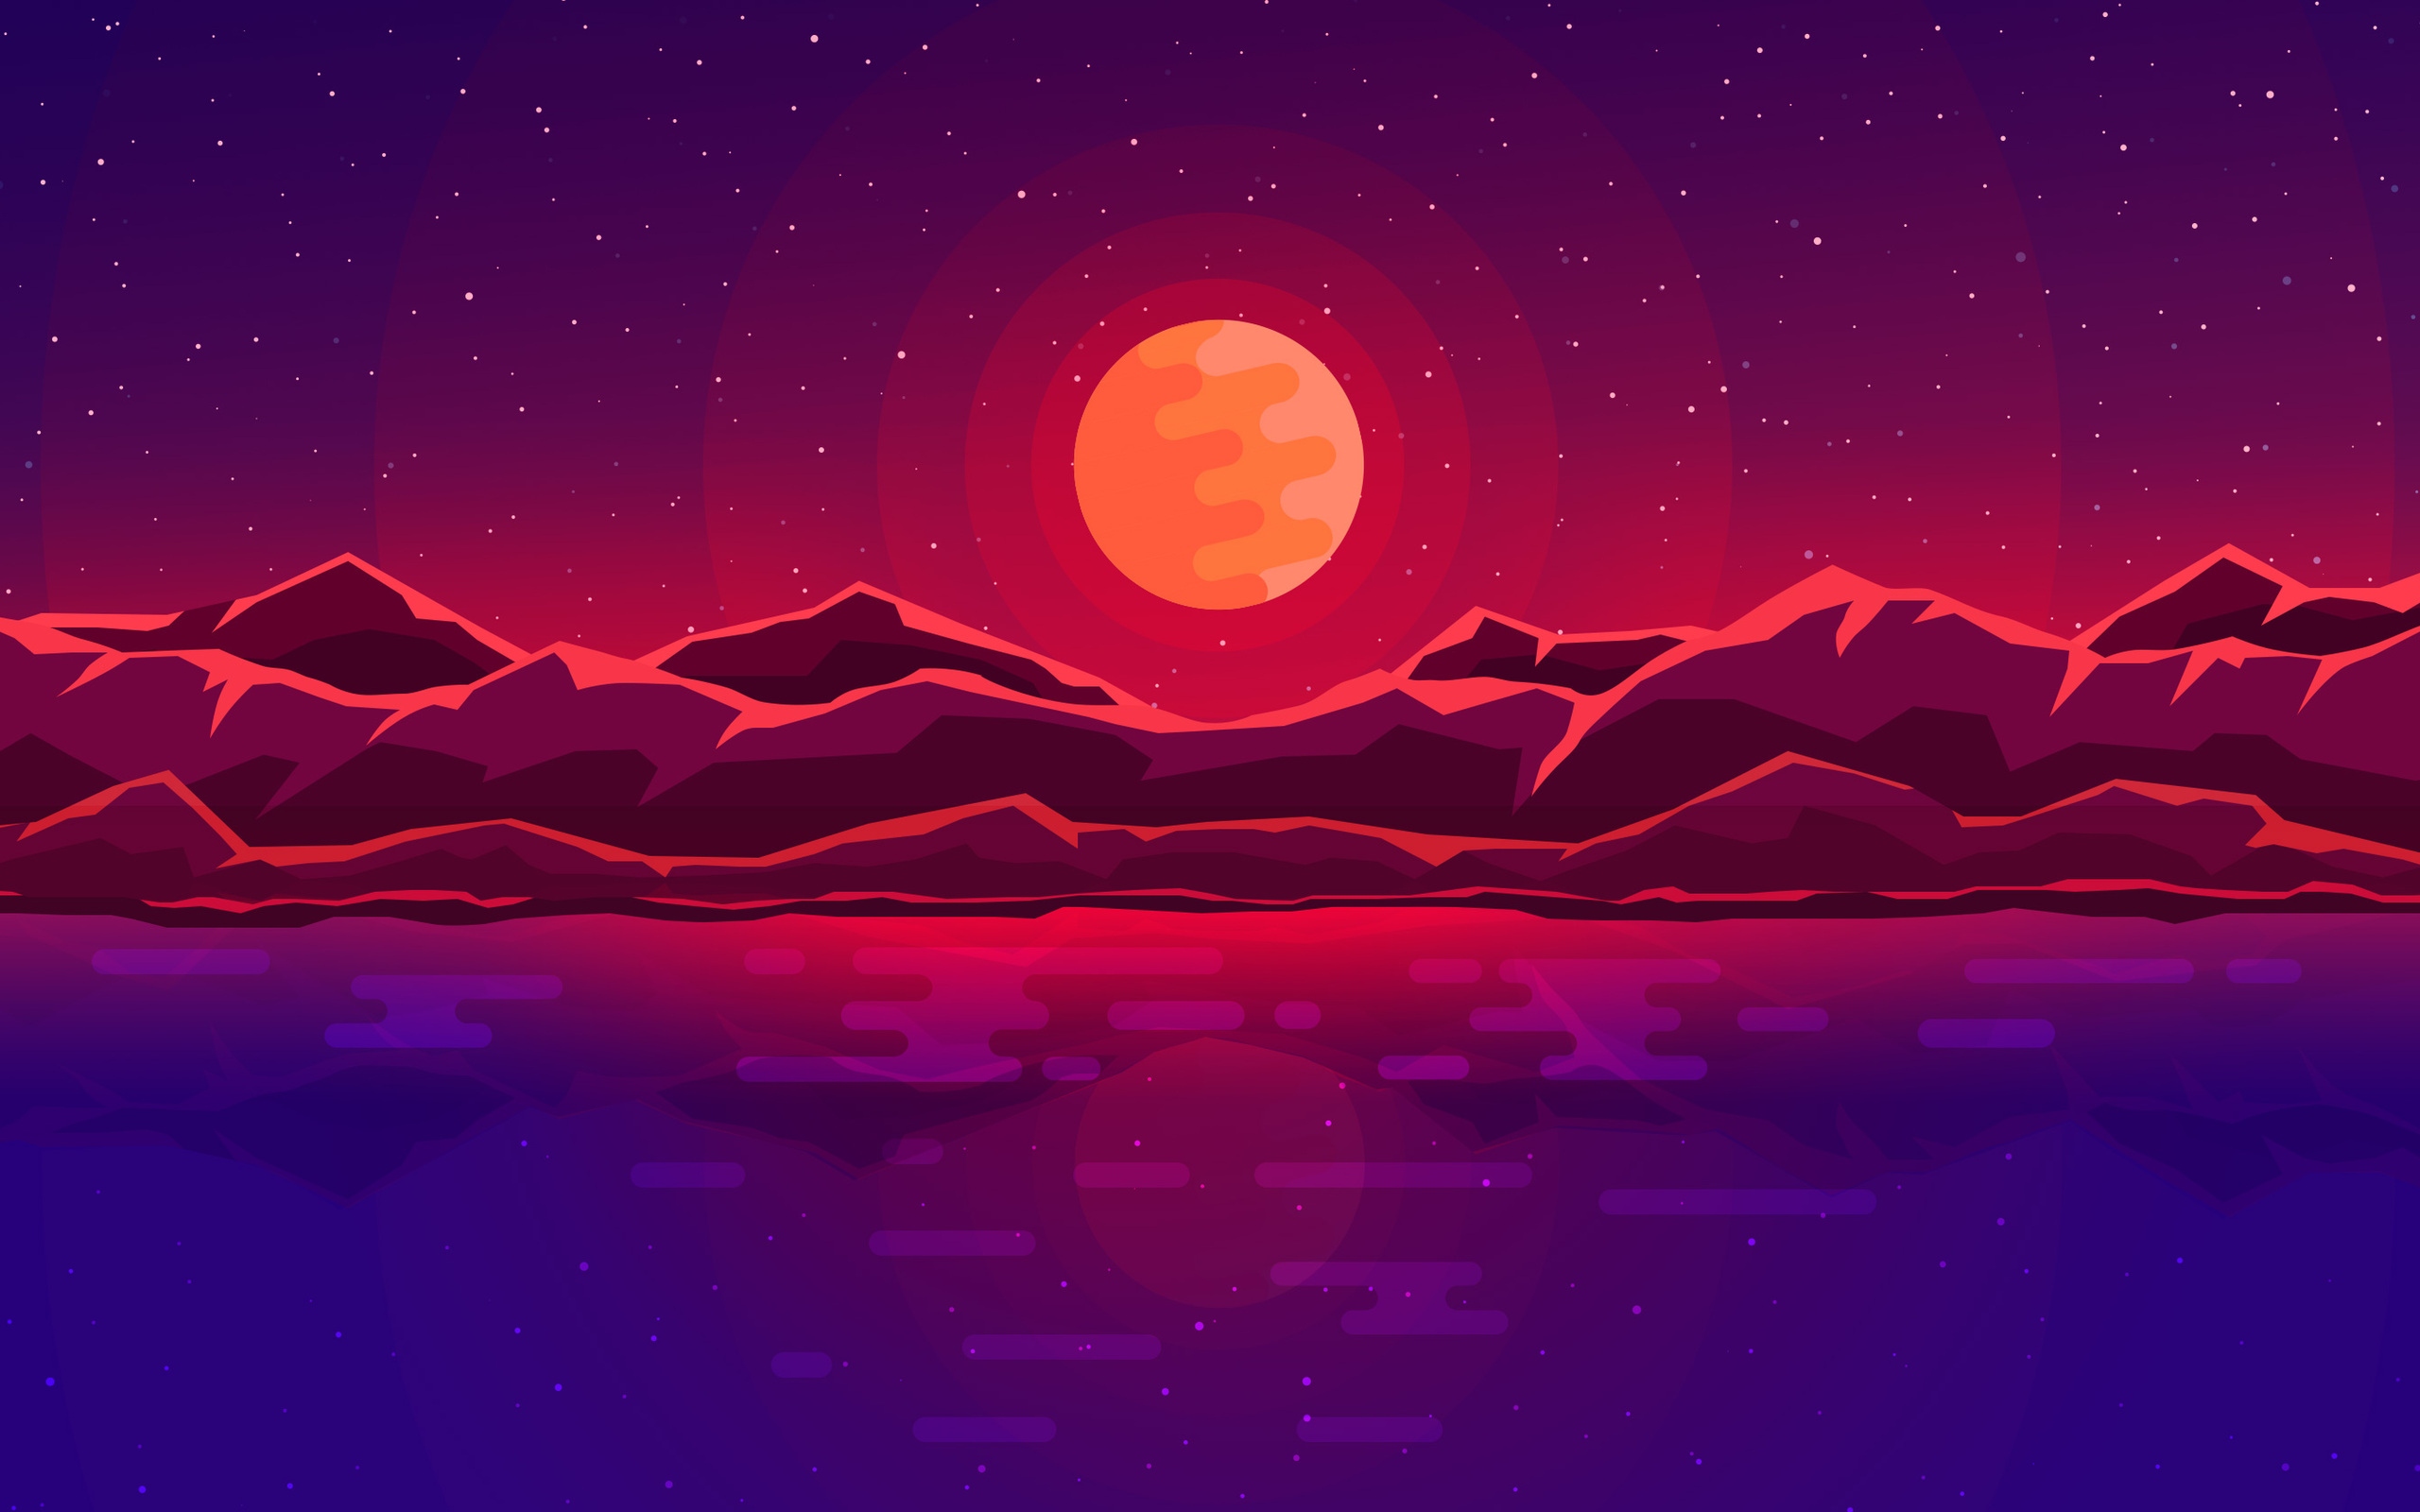 Abstract Art Red Sky Desktop Hd Artworks Desktop: 2560x1600 Moon Rays Red Space Sky Abstract Mountains